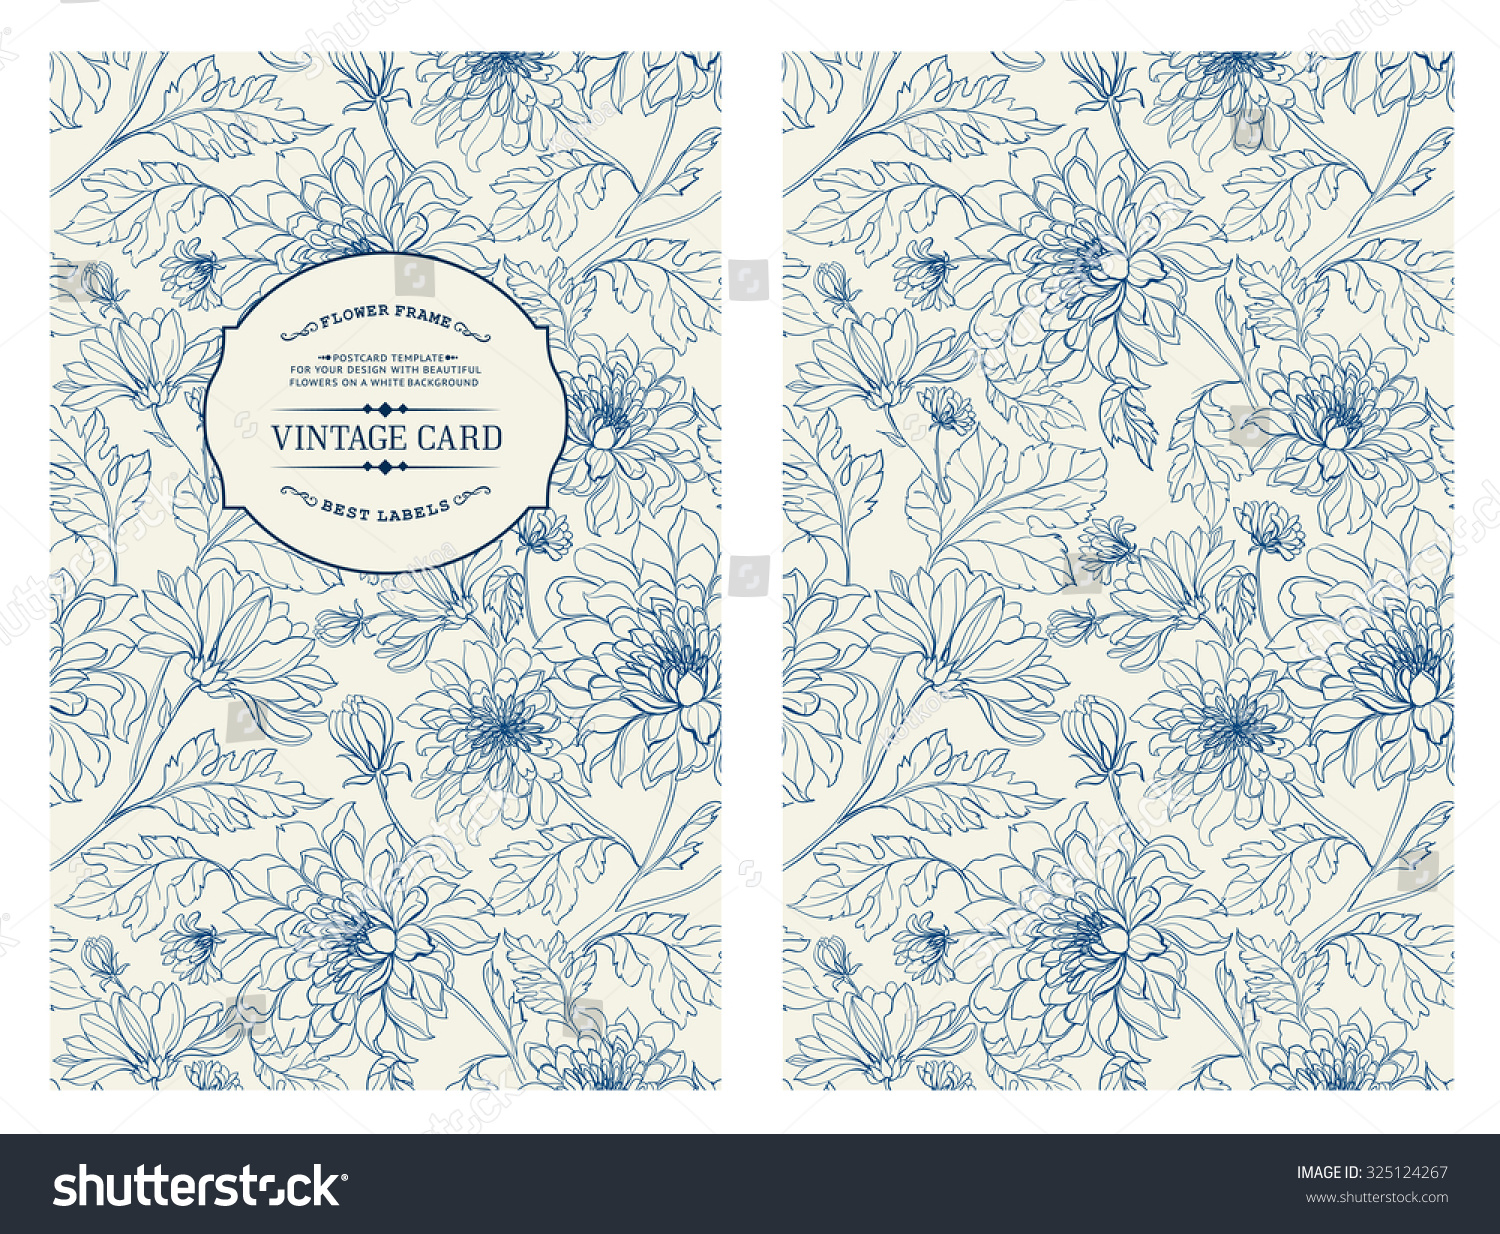 Book Cover Design Flower : Vintage card flowers on background book stock vector